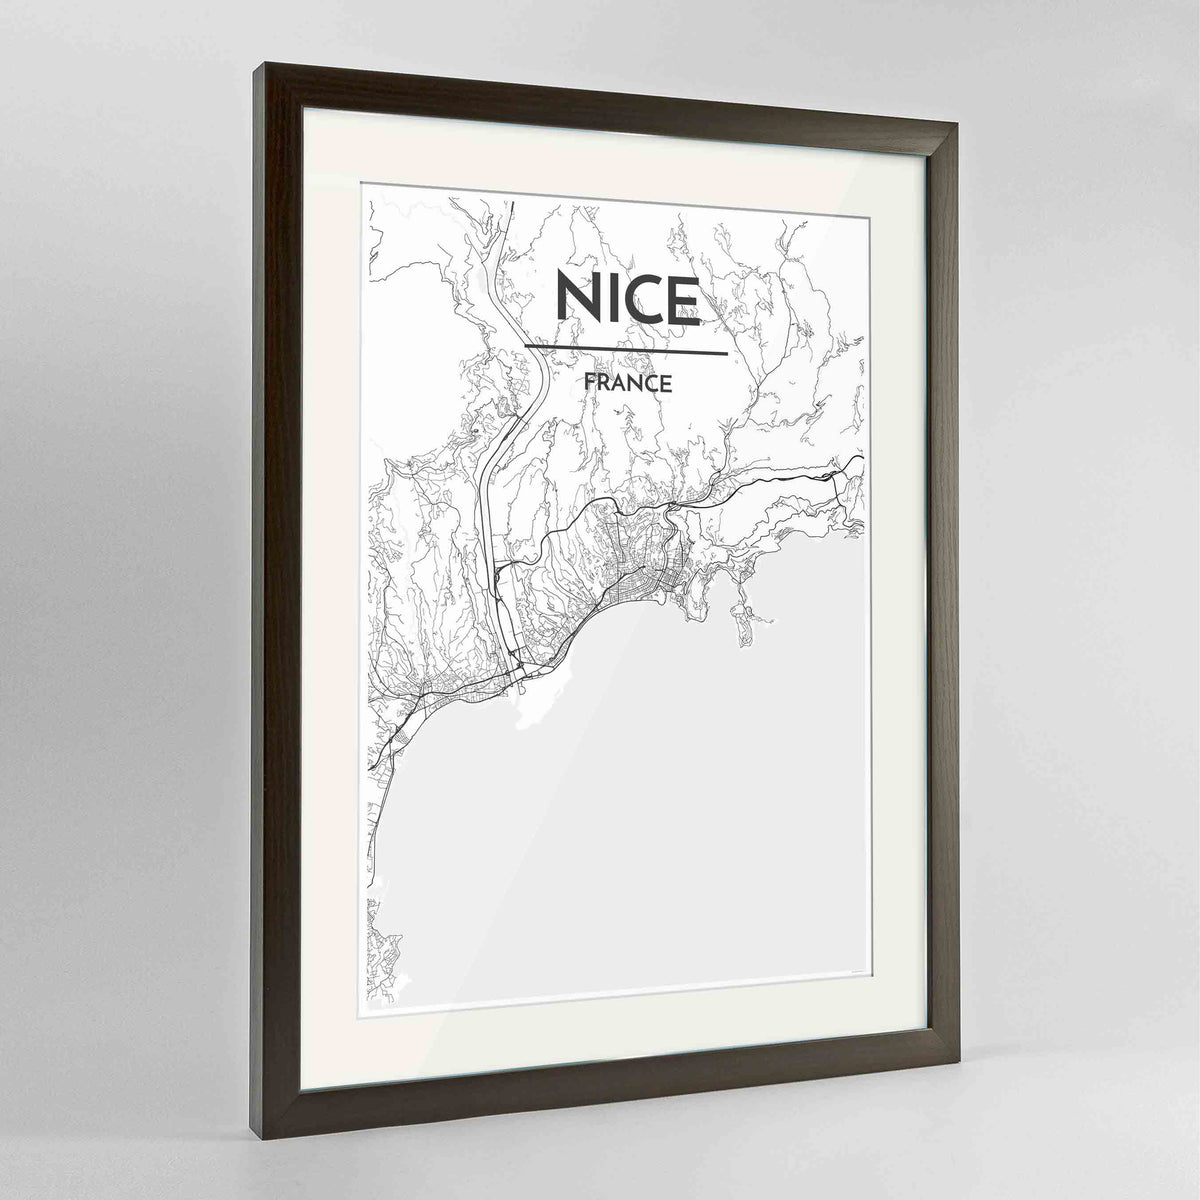 "Framed Nice Map Art Print 24x36"" Contemporary Walnut frame Point Two Design Group"